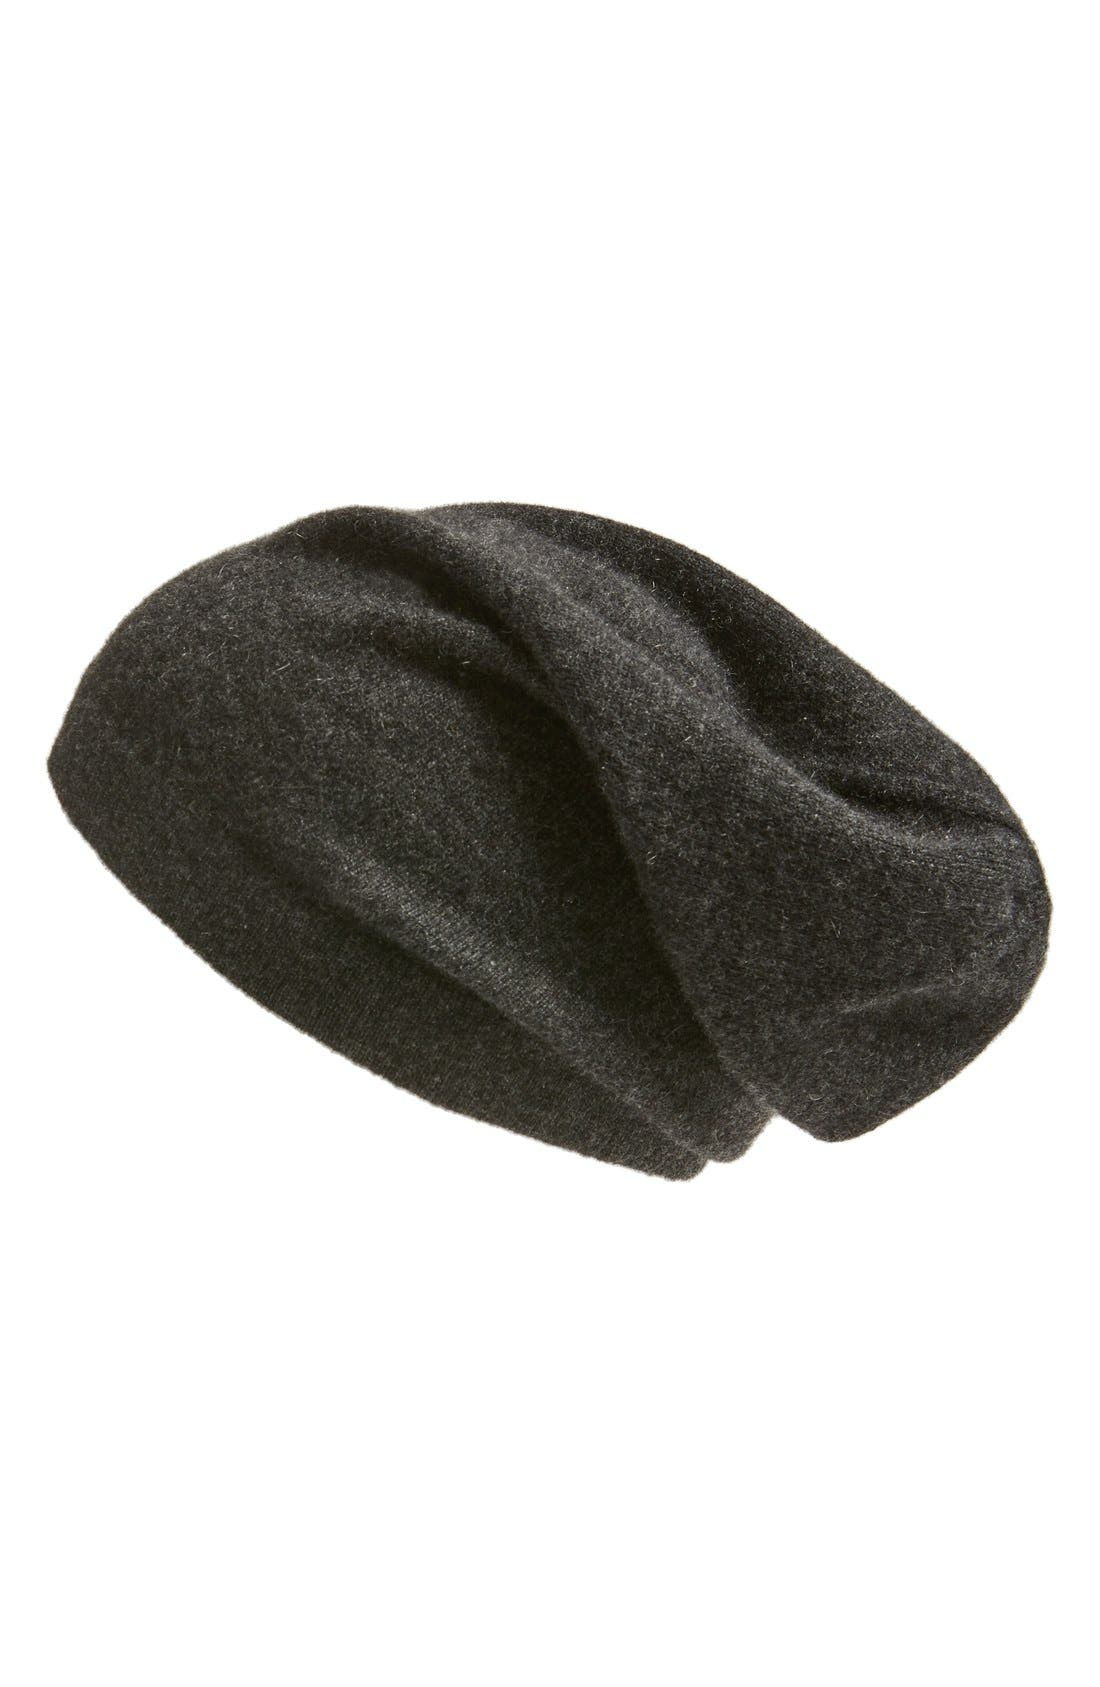 Cashmere Beanie,                         Main,                         color, Charcoal